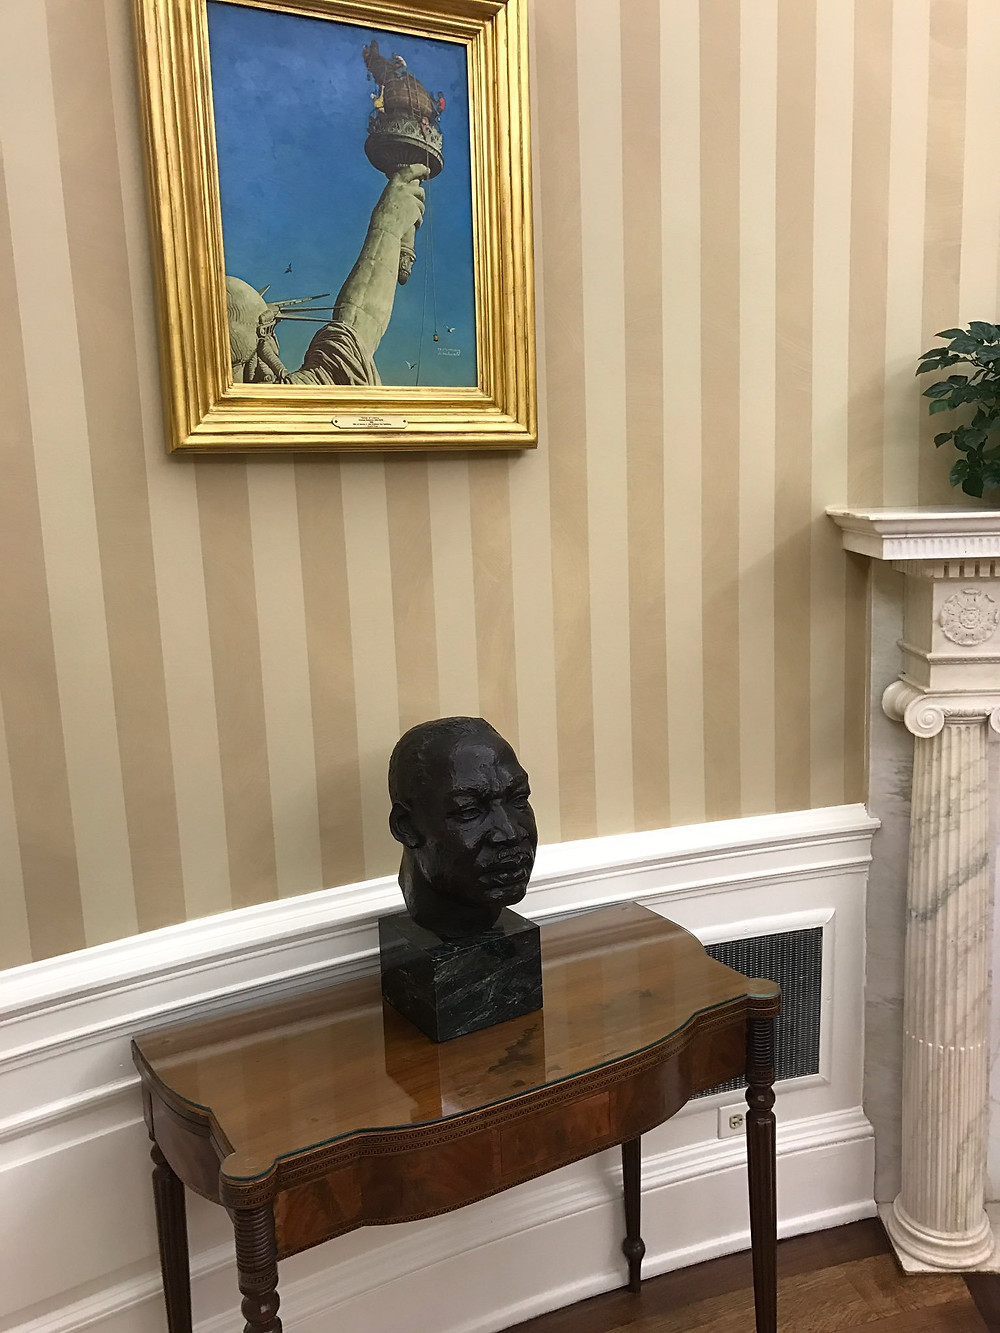 Alston bust of Rev. Martin Luther King Jr. in the Oval Office on 20 January 2017, below Norman Rockwell's painting Working on the Statue of Liberty, Photograph taken by Sean Spicer.